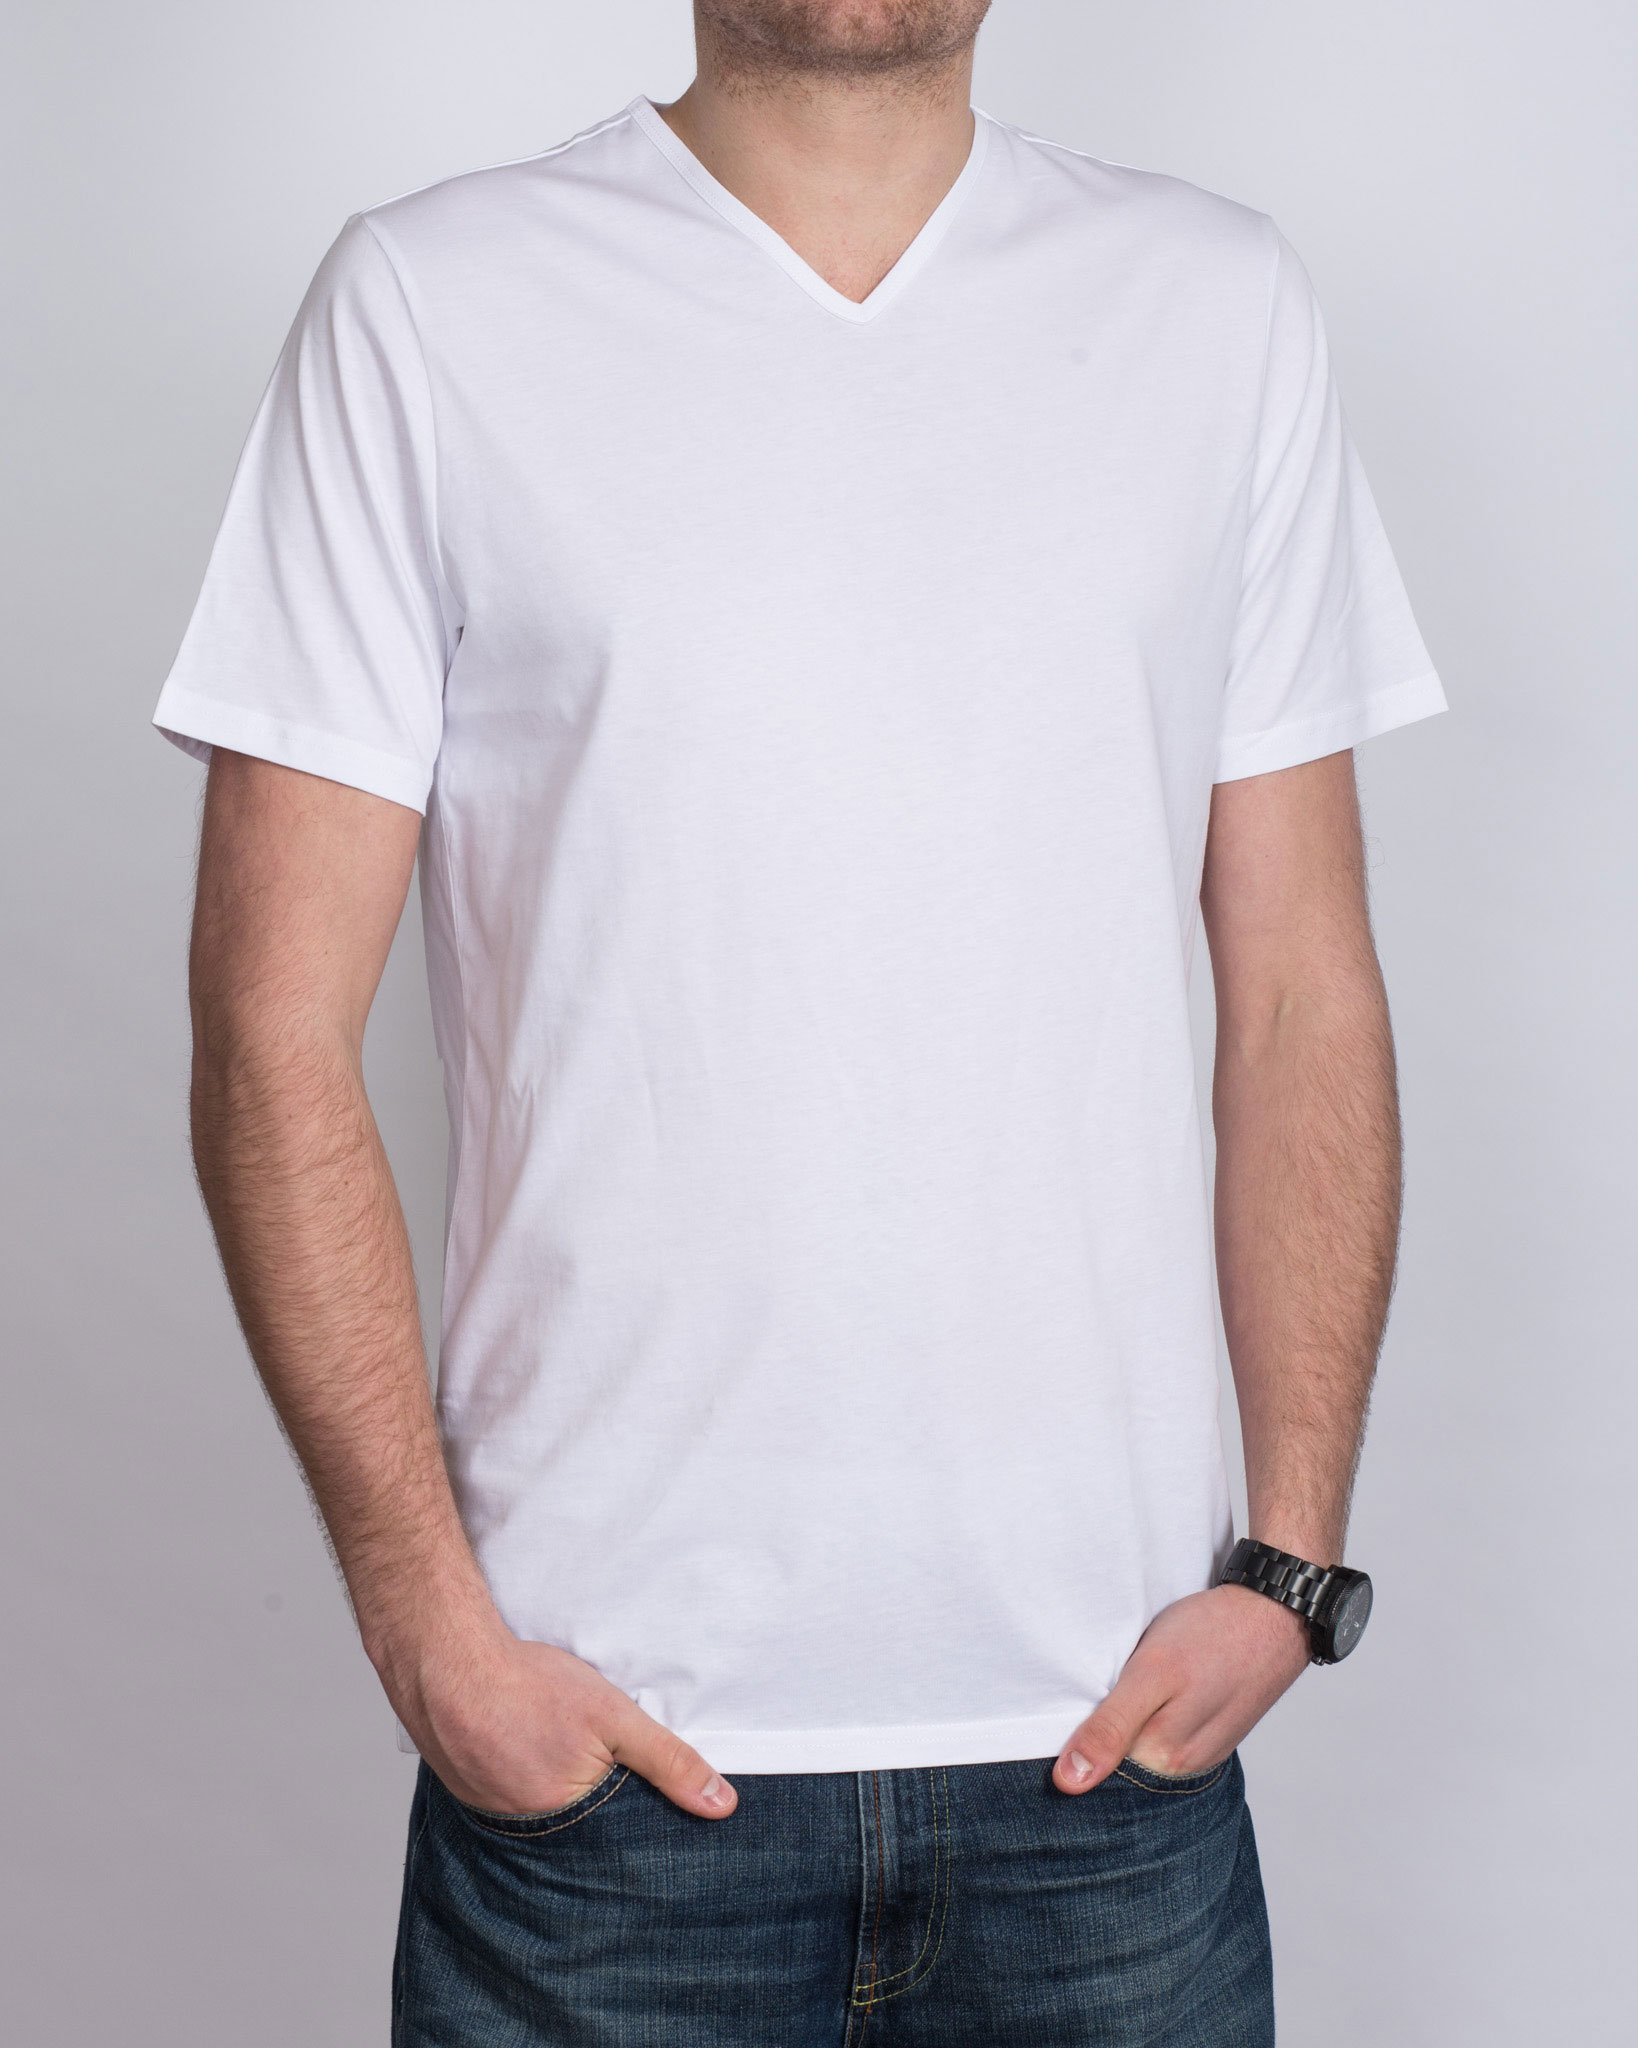 2T Extra Tall V-Neck T-Shirt (white)